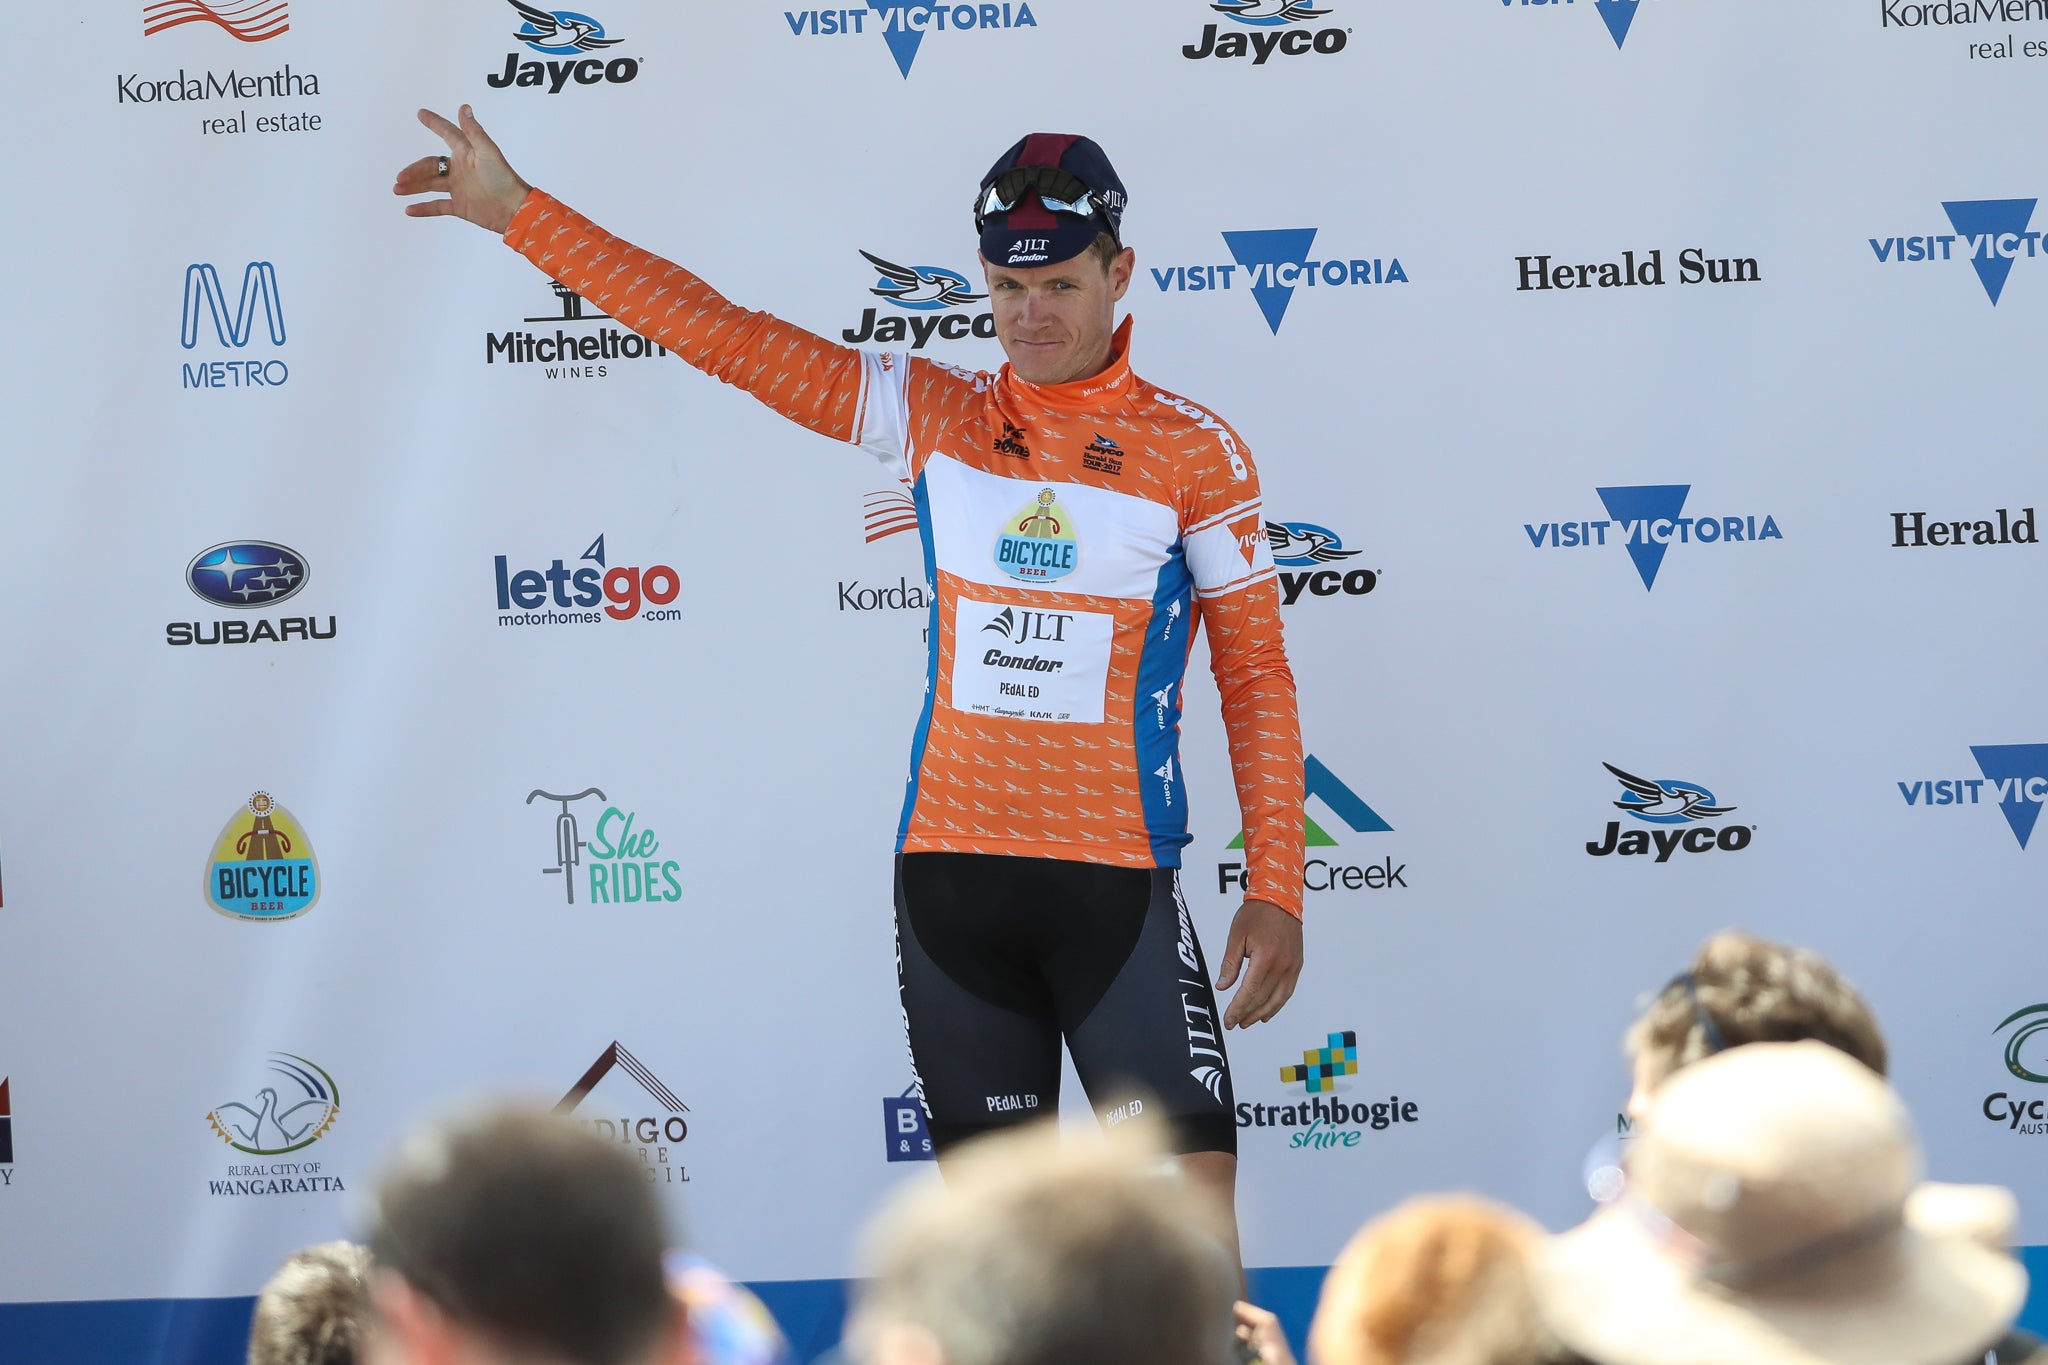 Lampier awarded most aggressive jersey